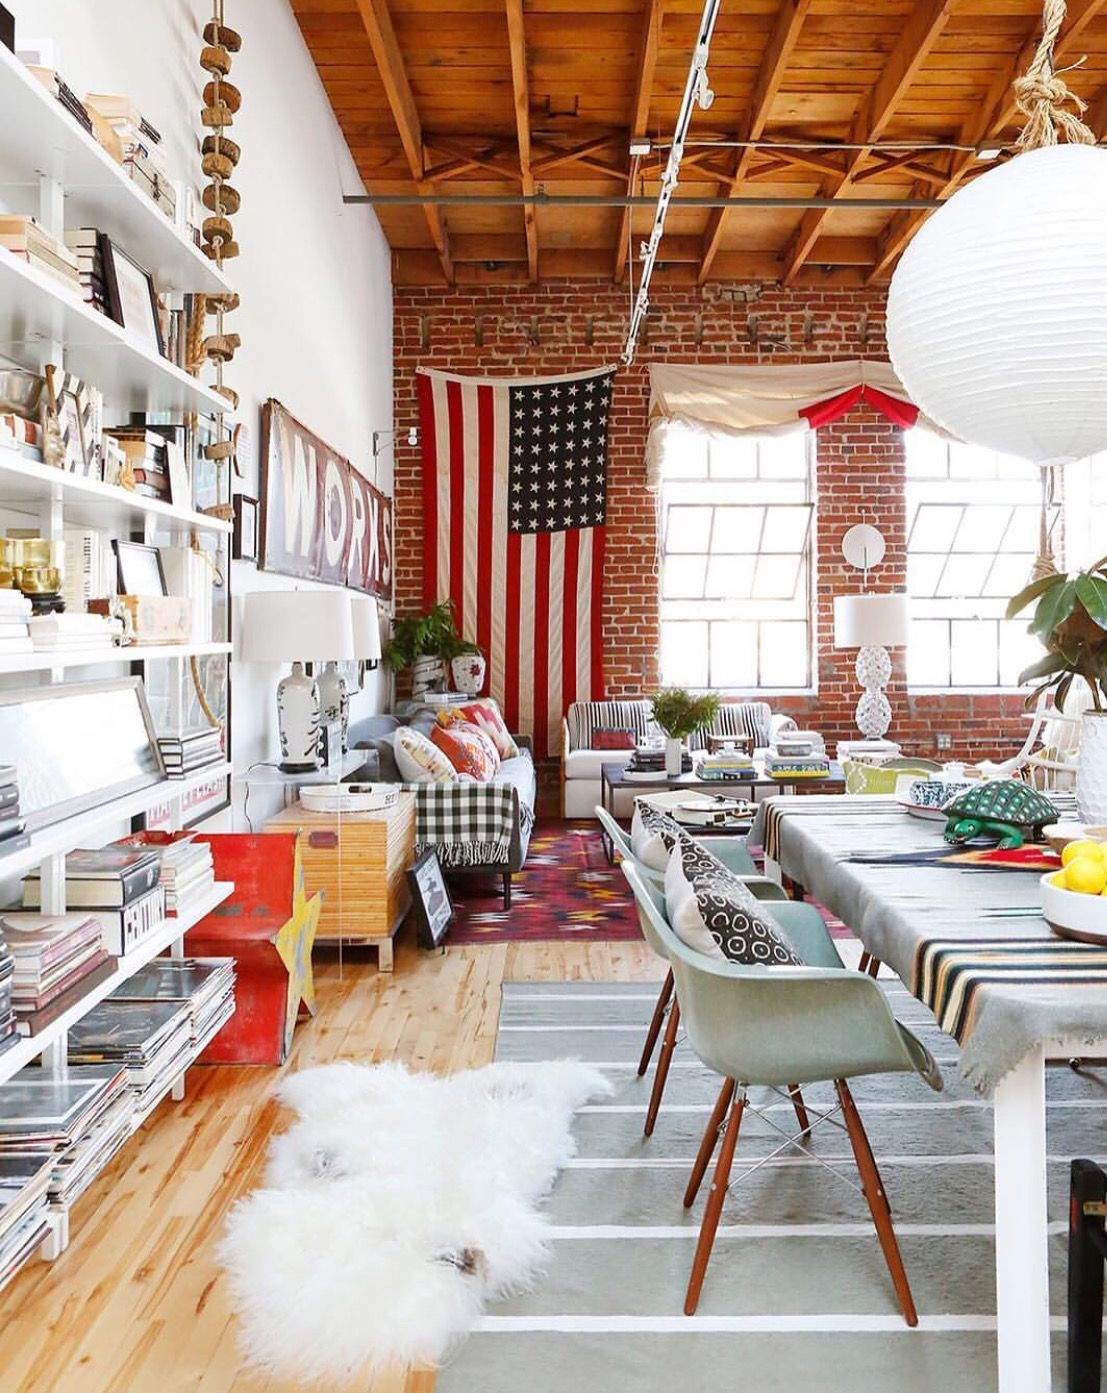 Pin by Clair Pomponi on Future House Loft design, Home